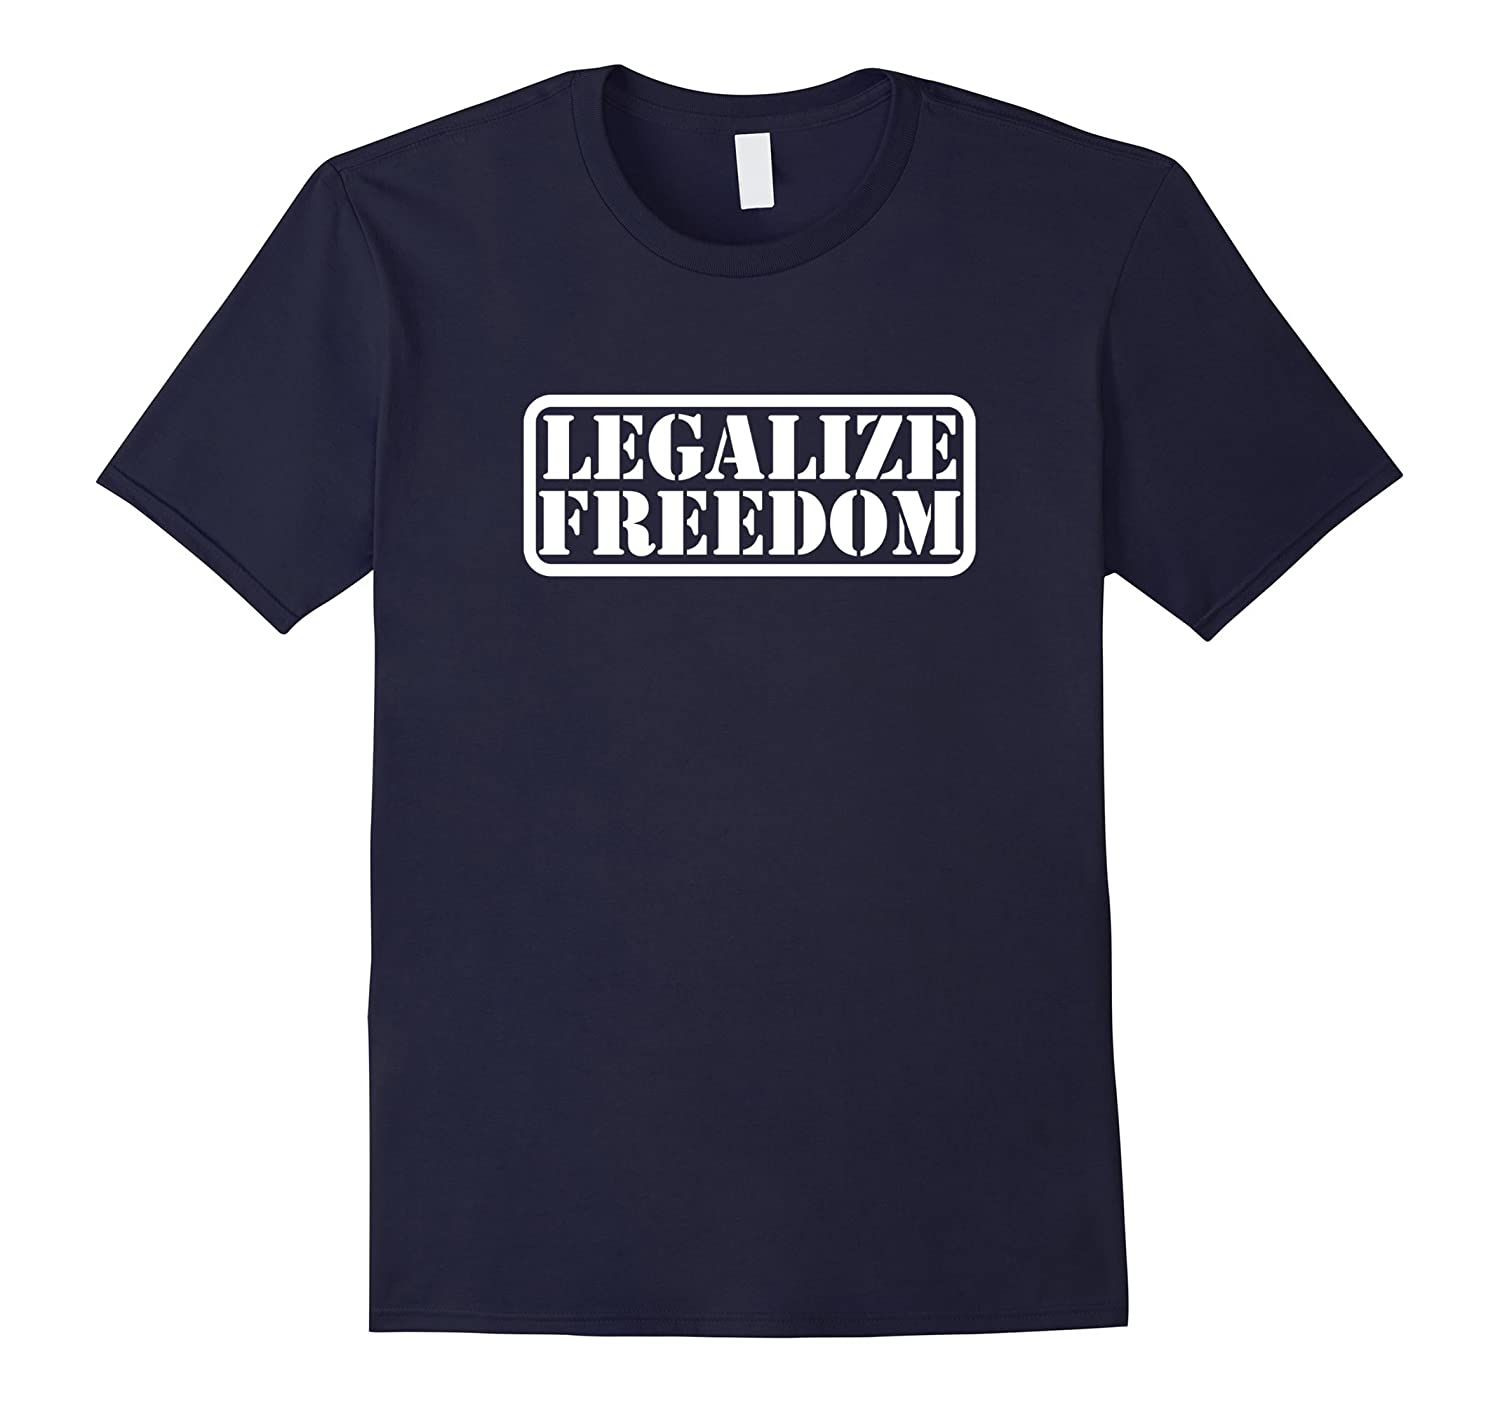 4th of July Legalize Freedom Patriotic T Shirt - 20407-Art